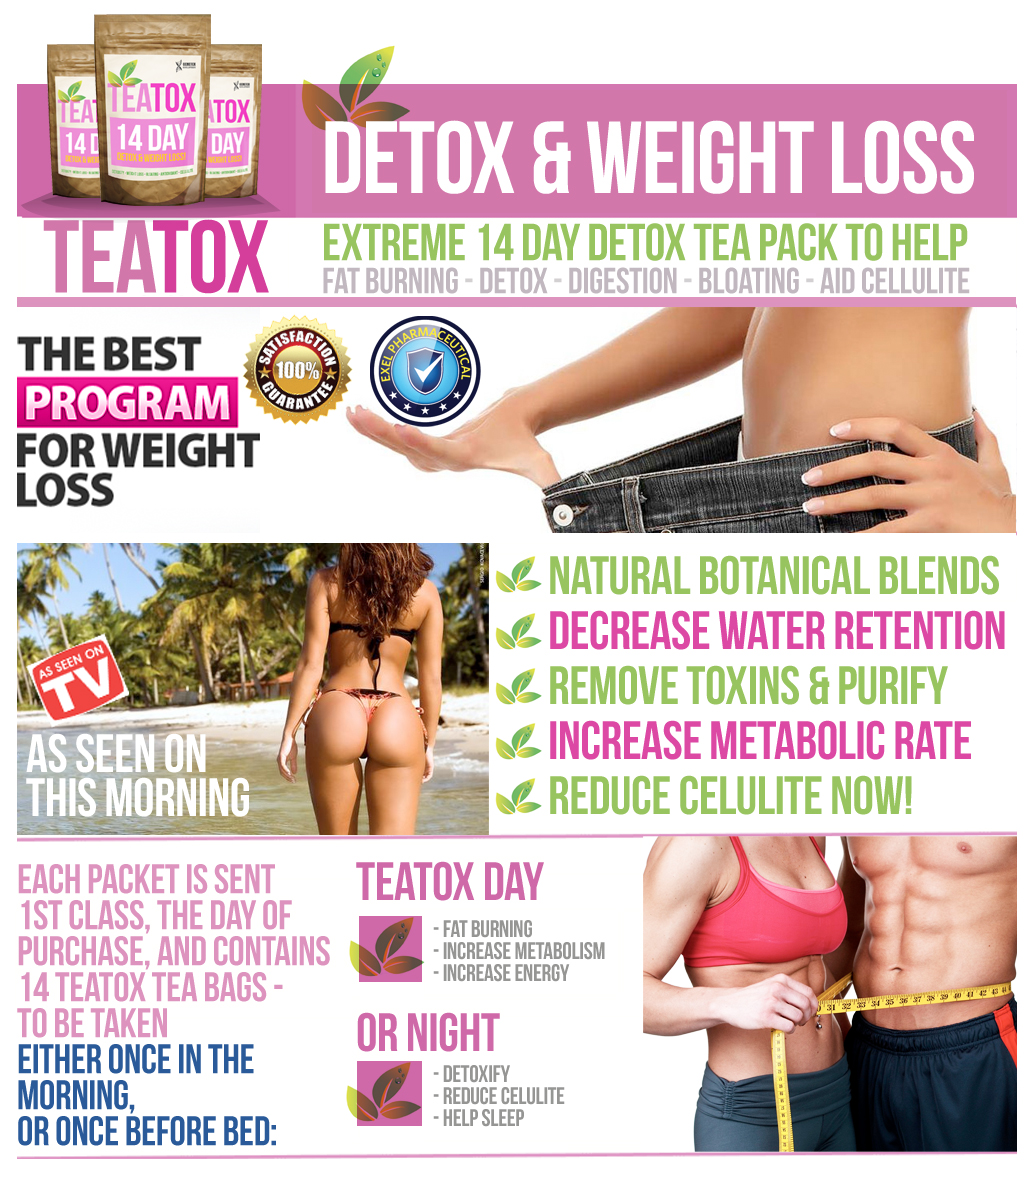 Will taking laxatives everyday help you lose weight